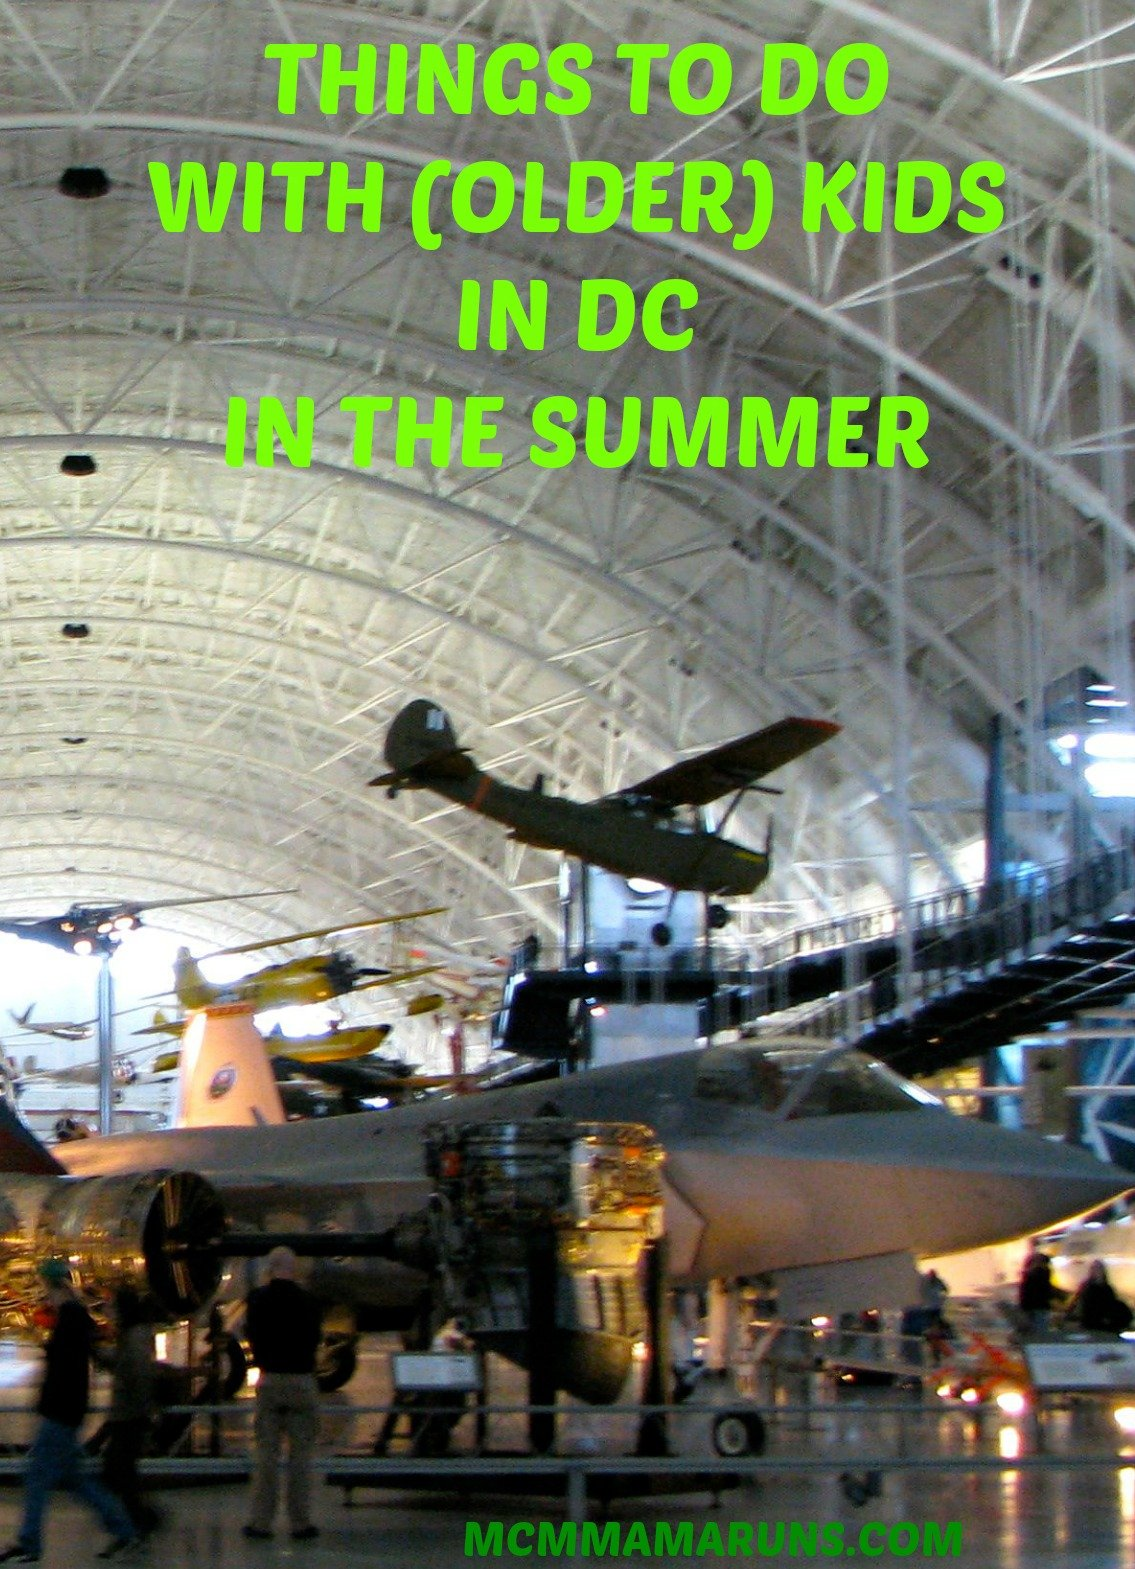 DC in the summer with kids